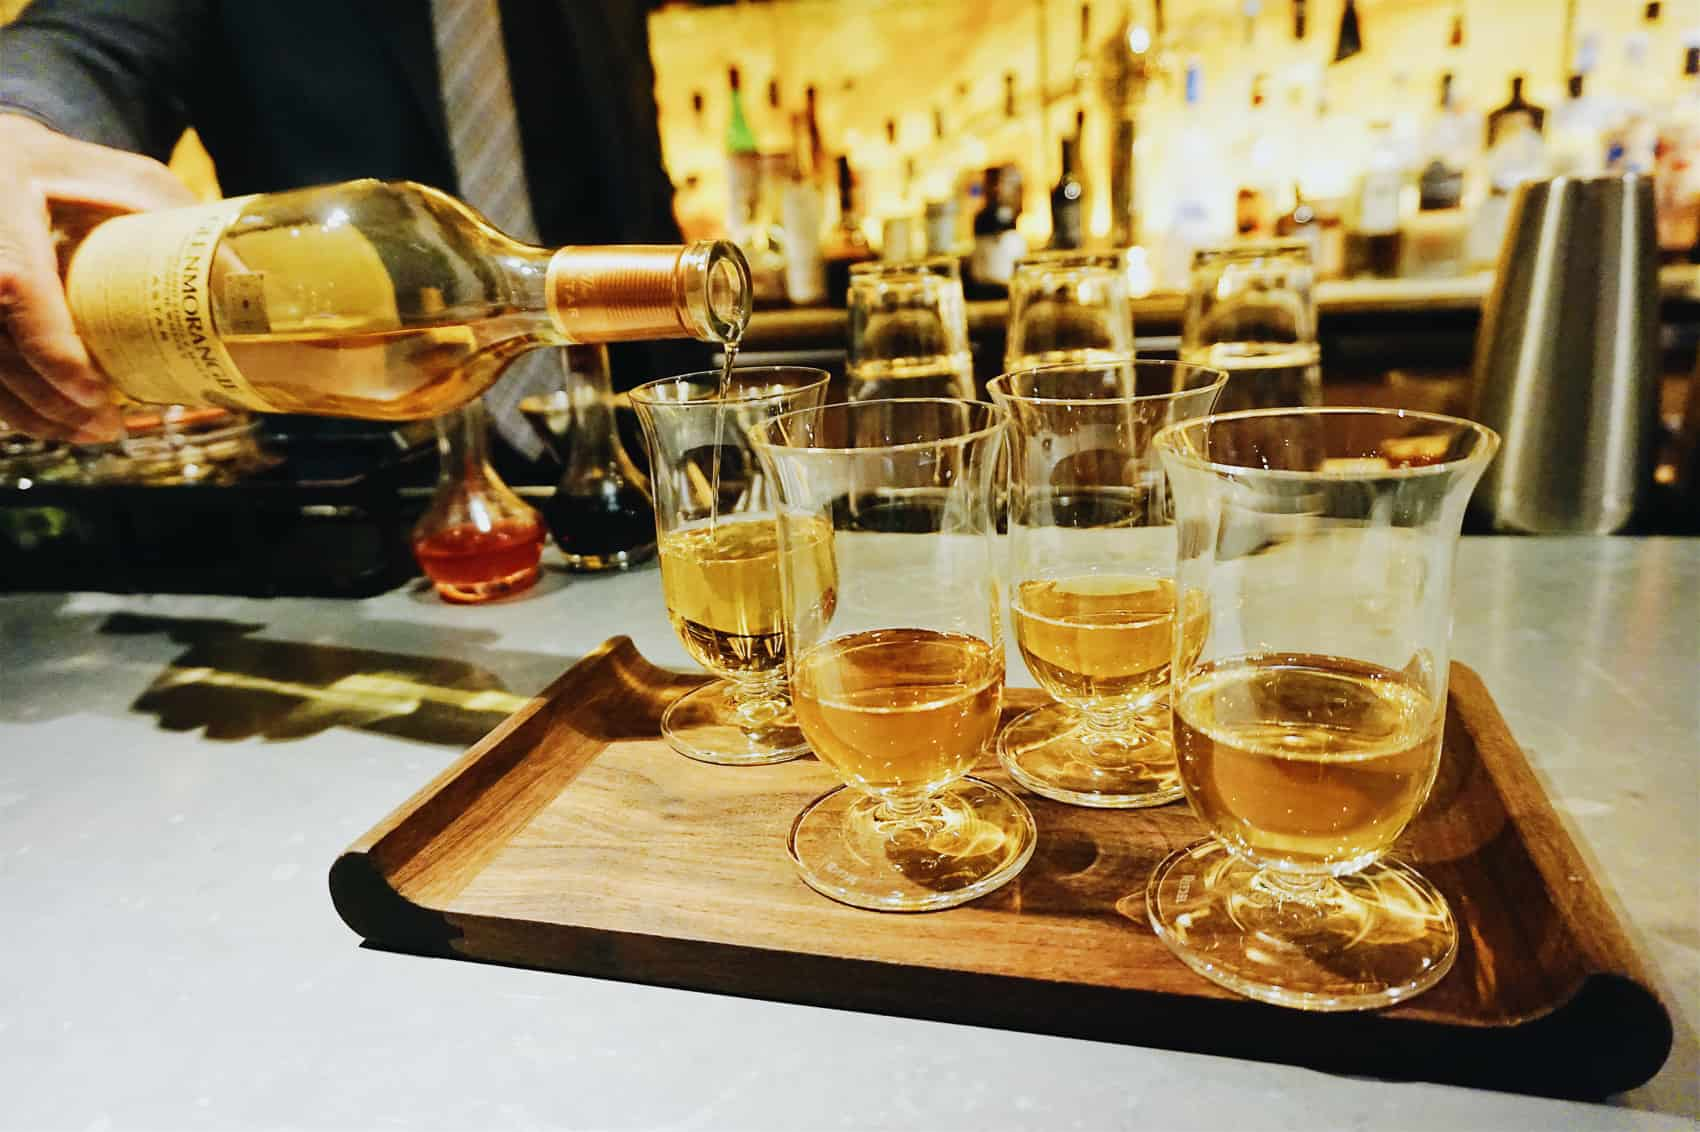 Bartender pouring a fourth glass of whiskey inside the Ivy Baltimore. These drinks are prepared for guests, resting on a serving tray.